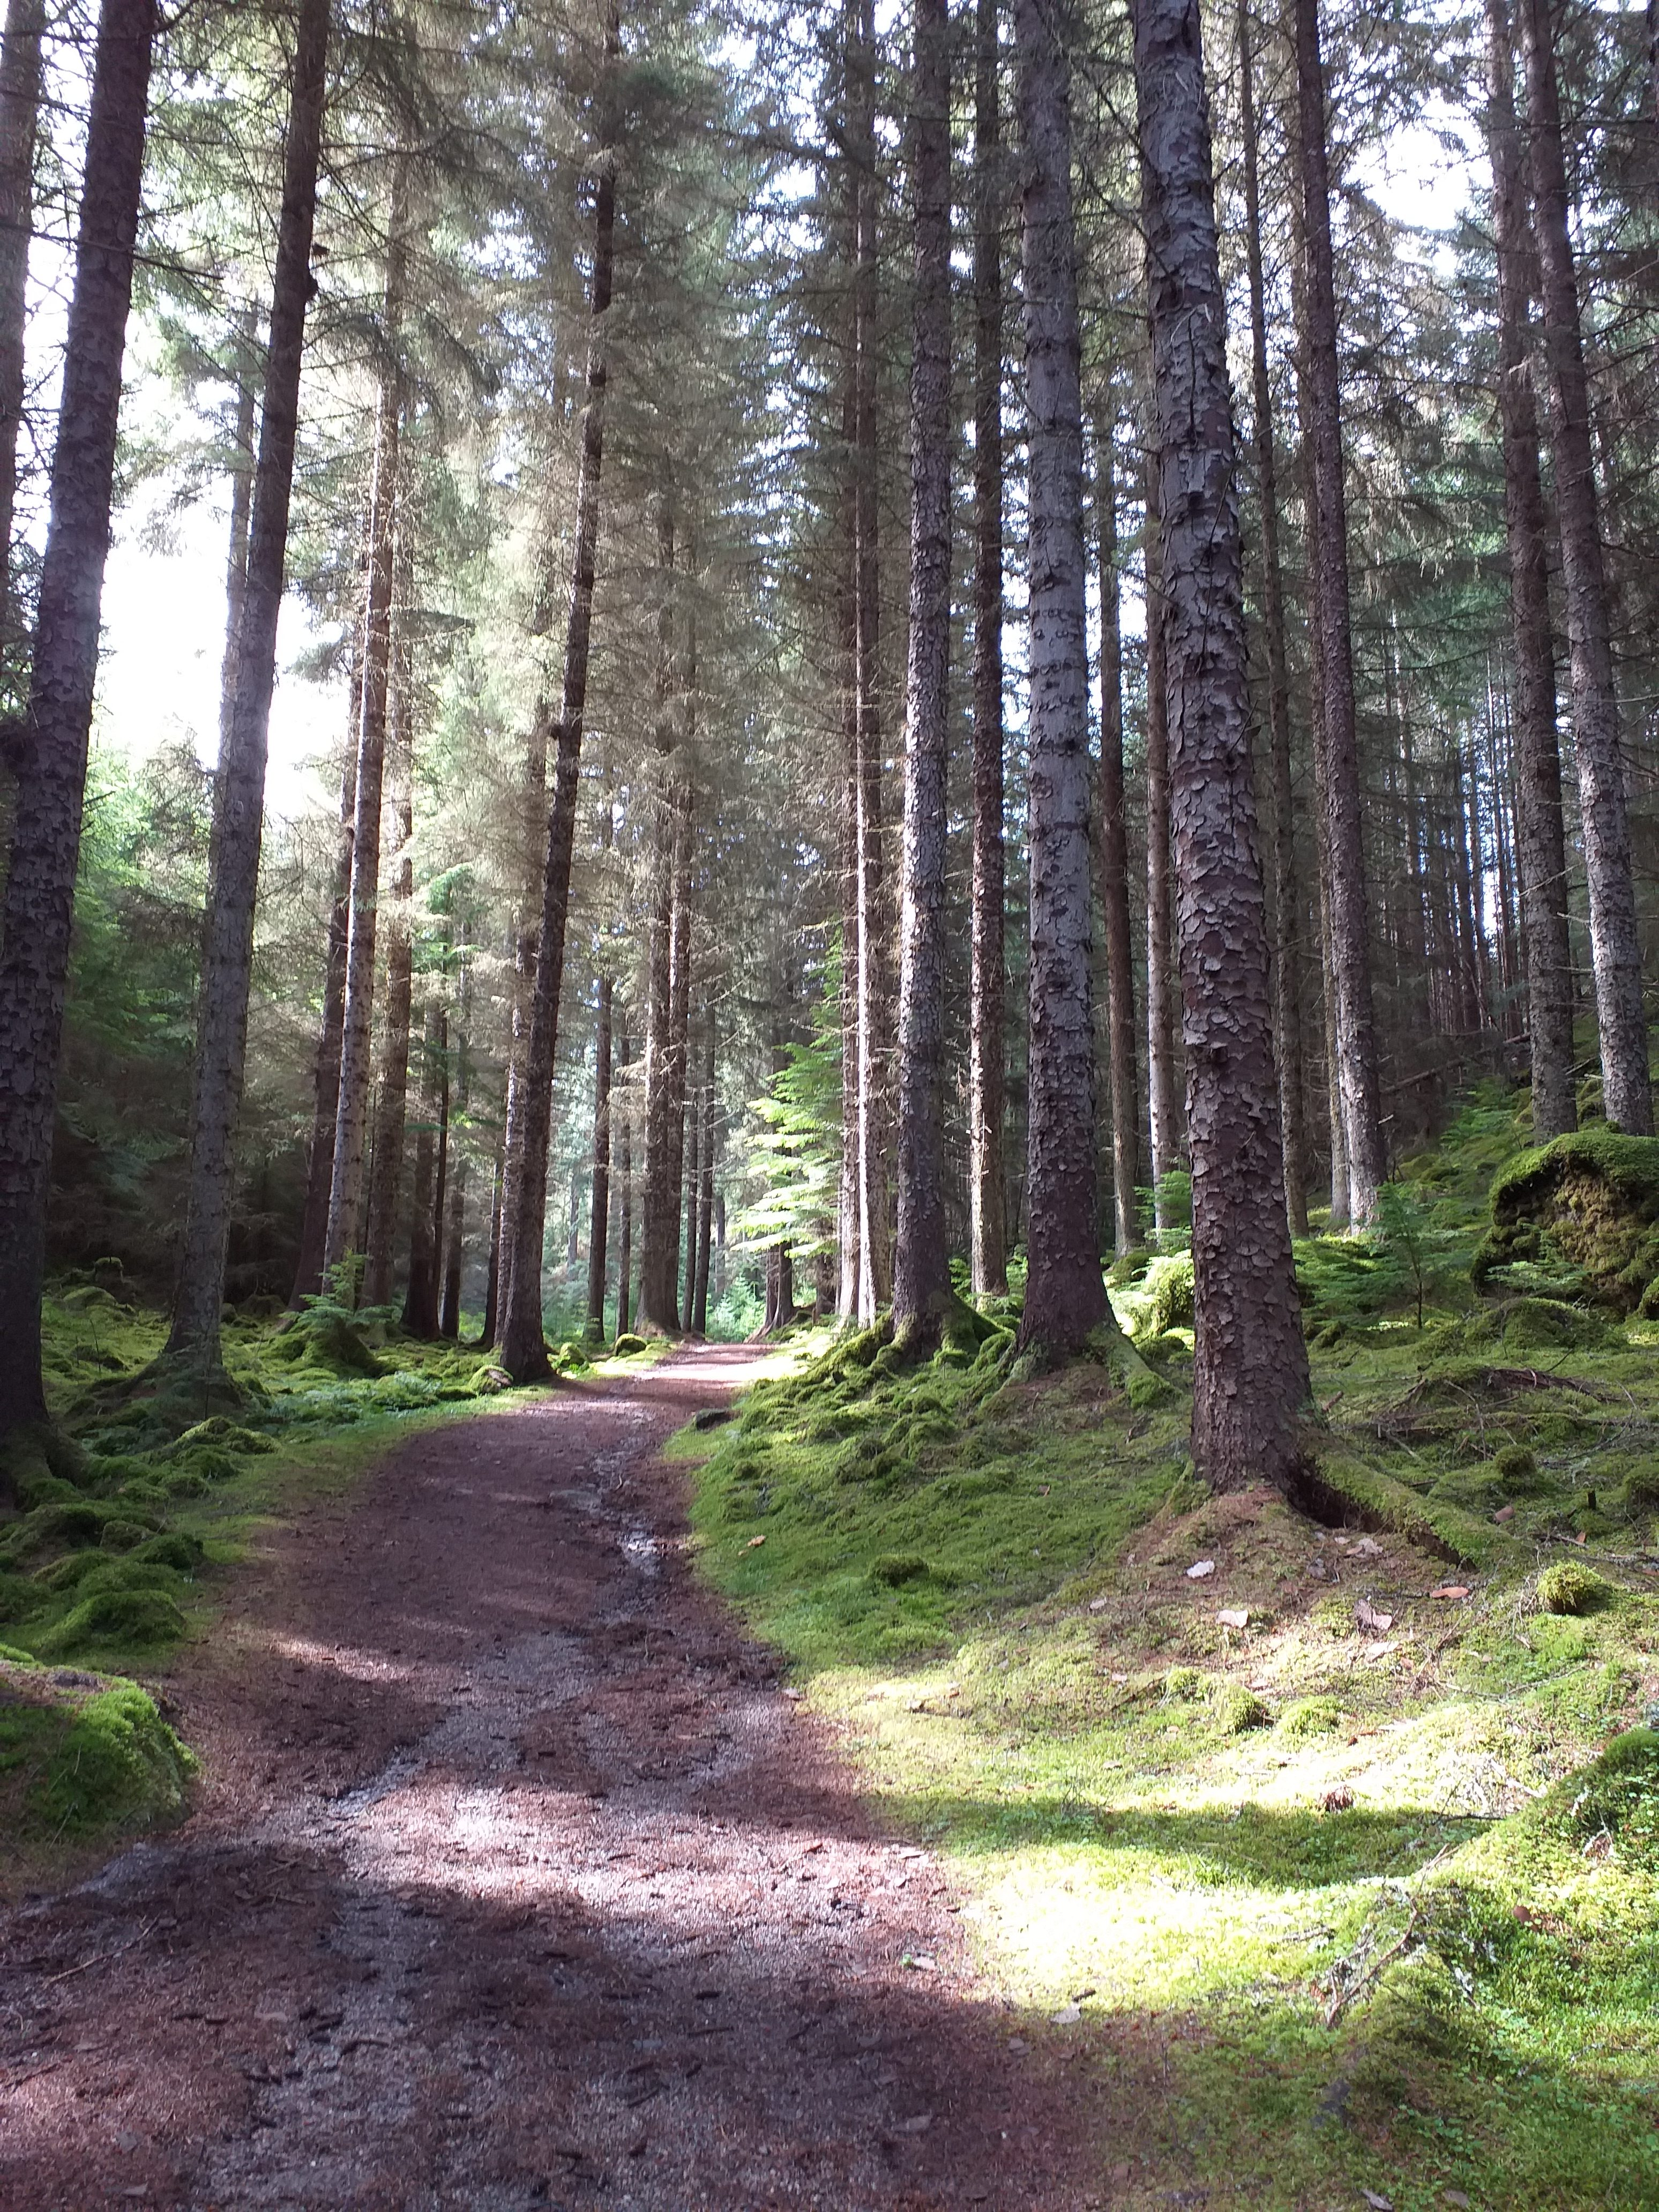 Trees along the South Loch Ness Trail in the Scottish Highlands